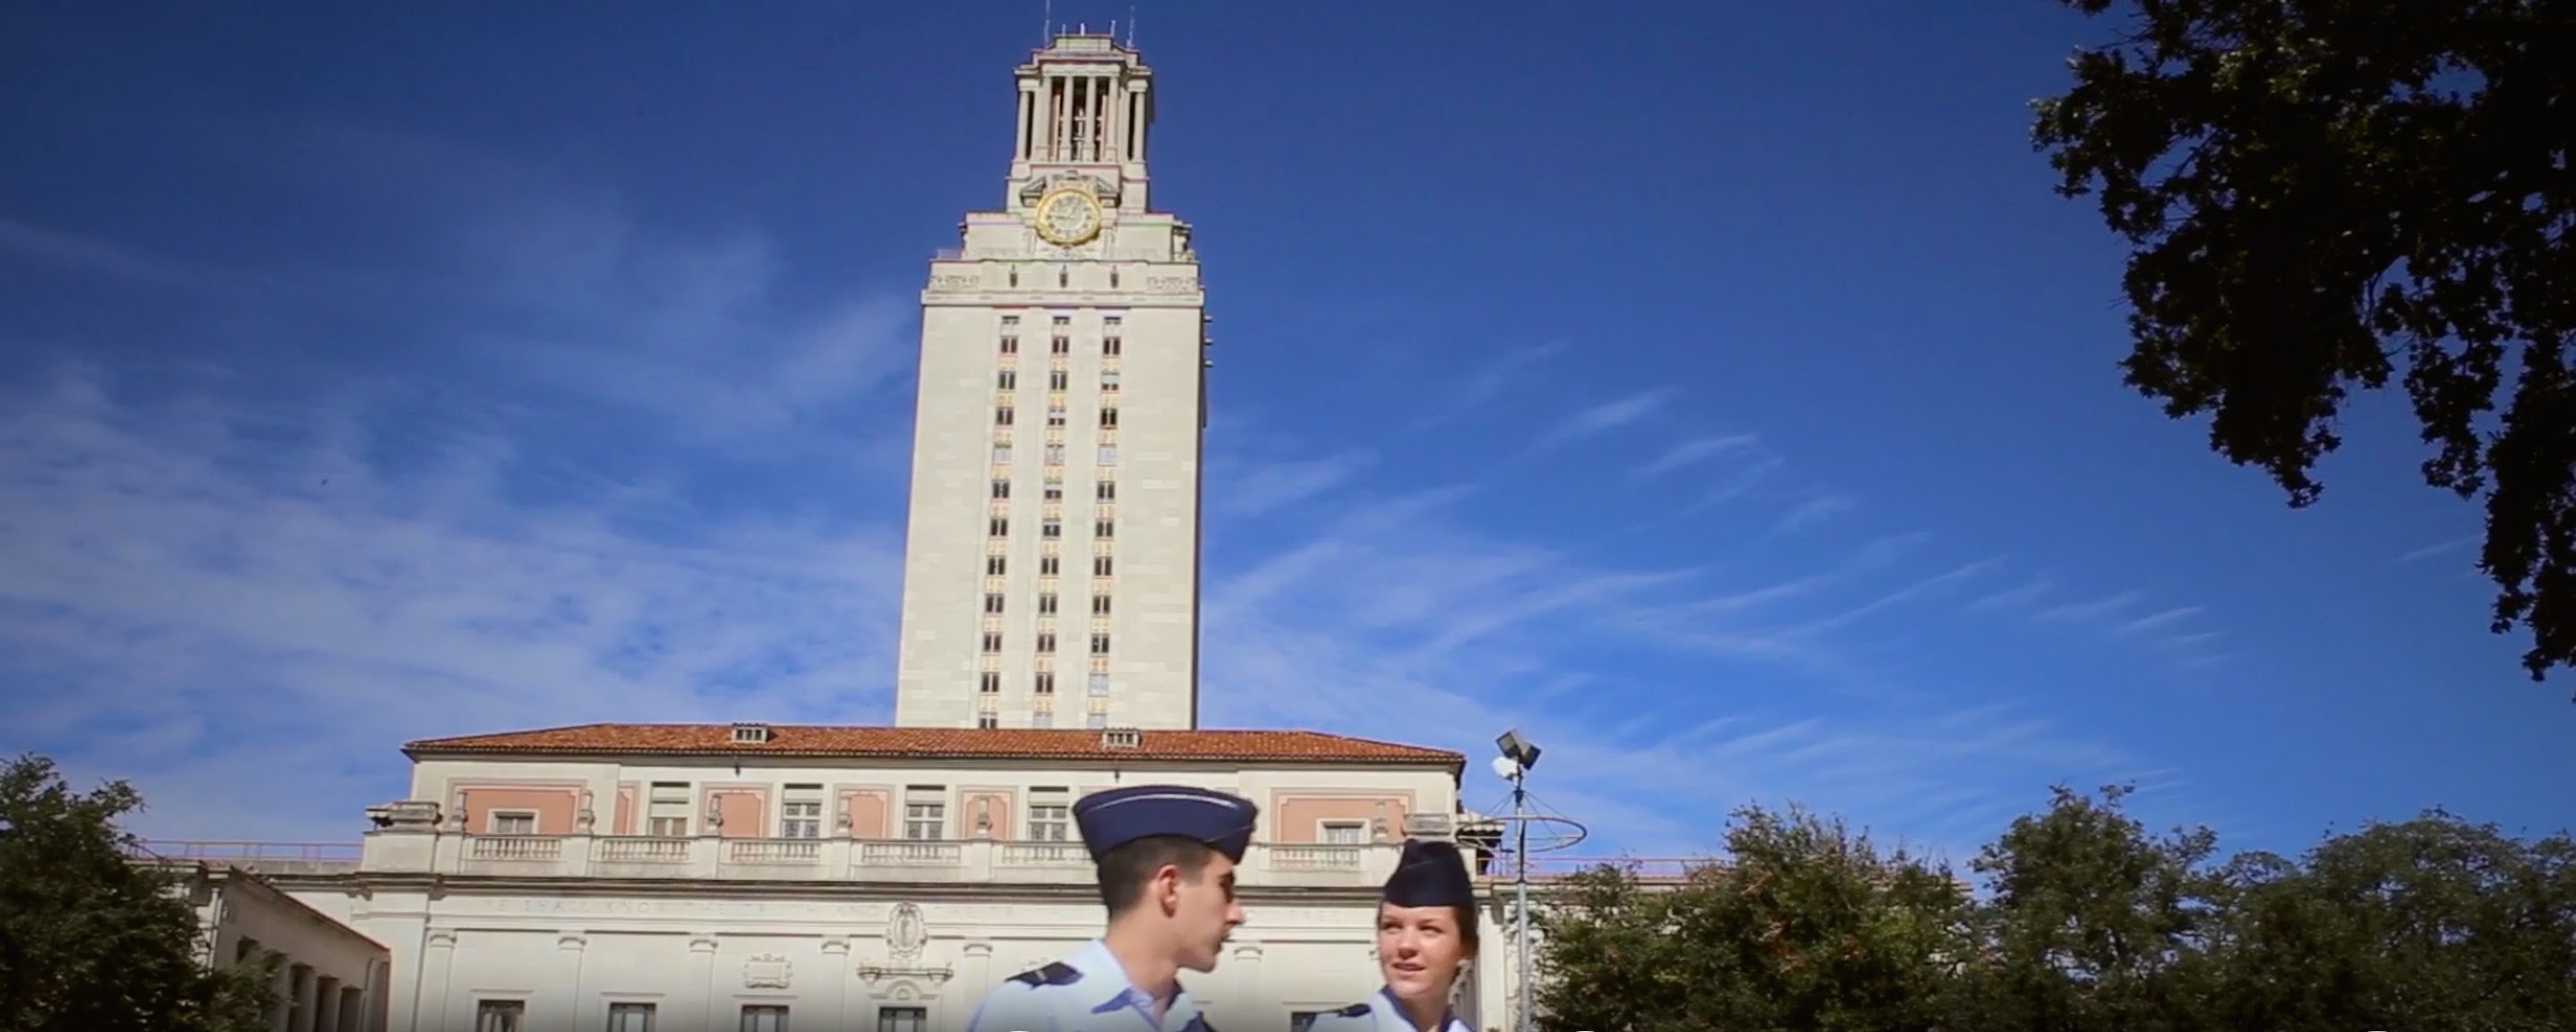 ROTC in front of UT tower